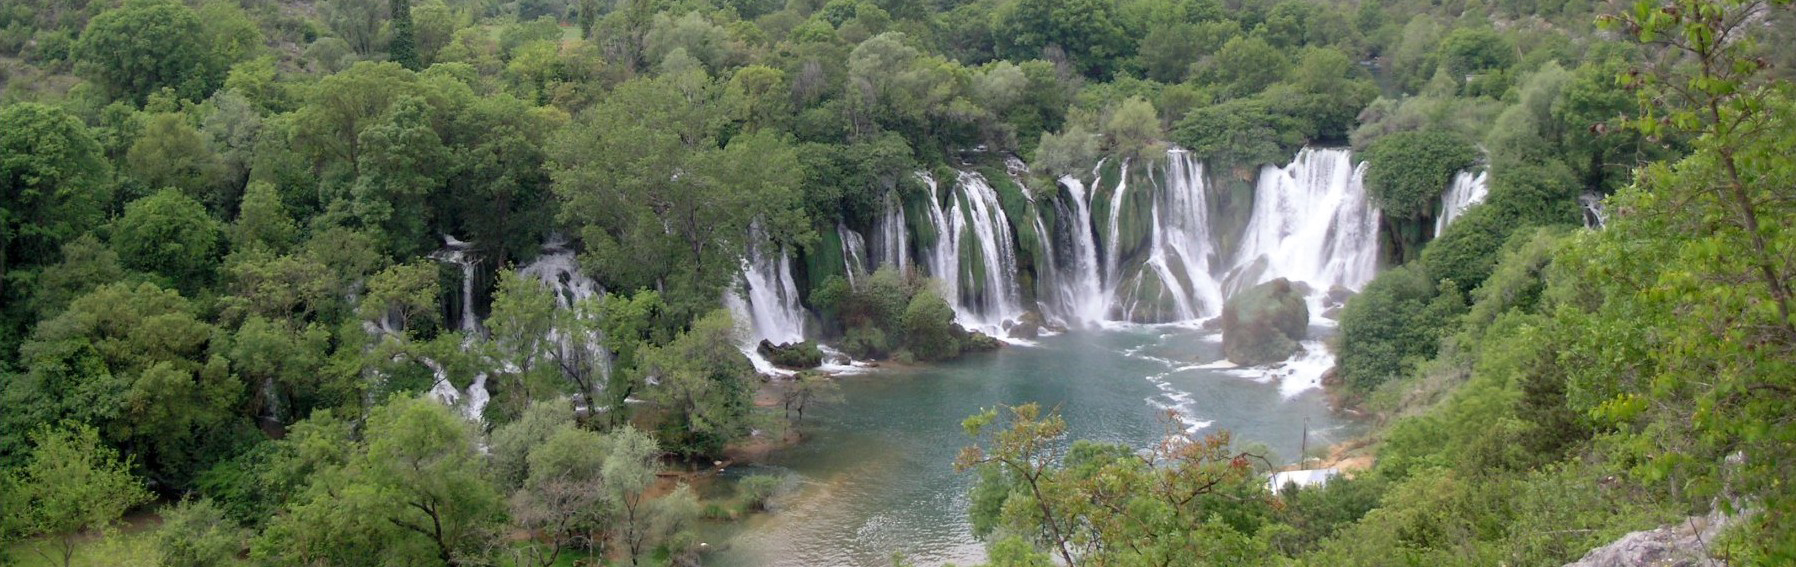 First full day in Mostar – tour with Batas